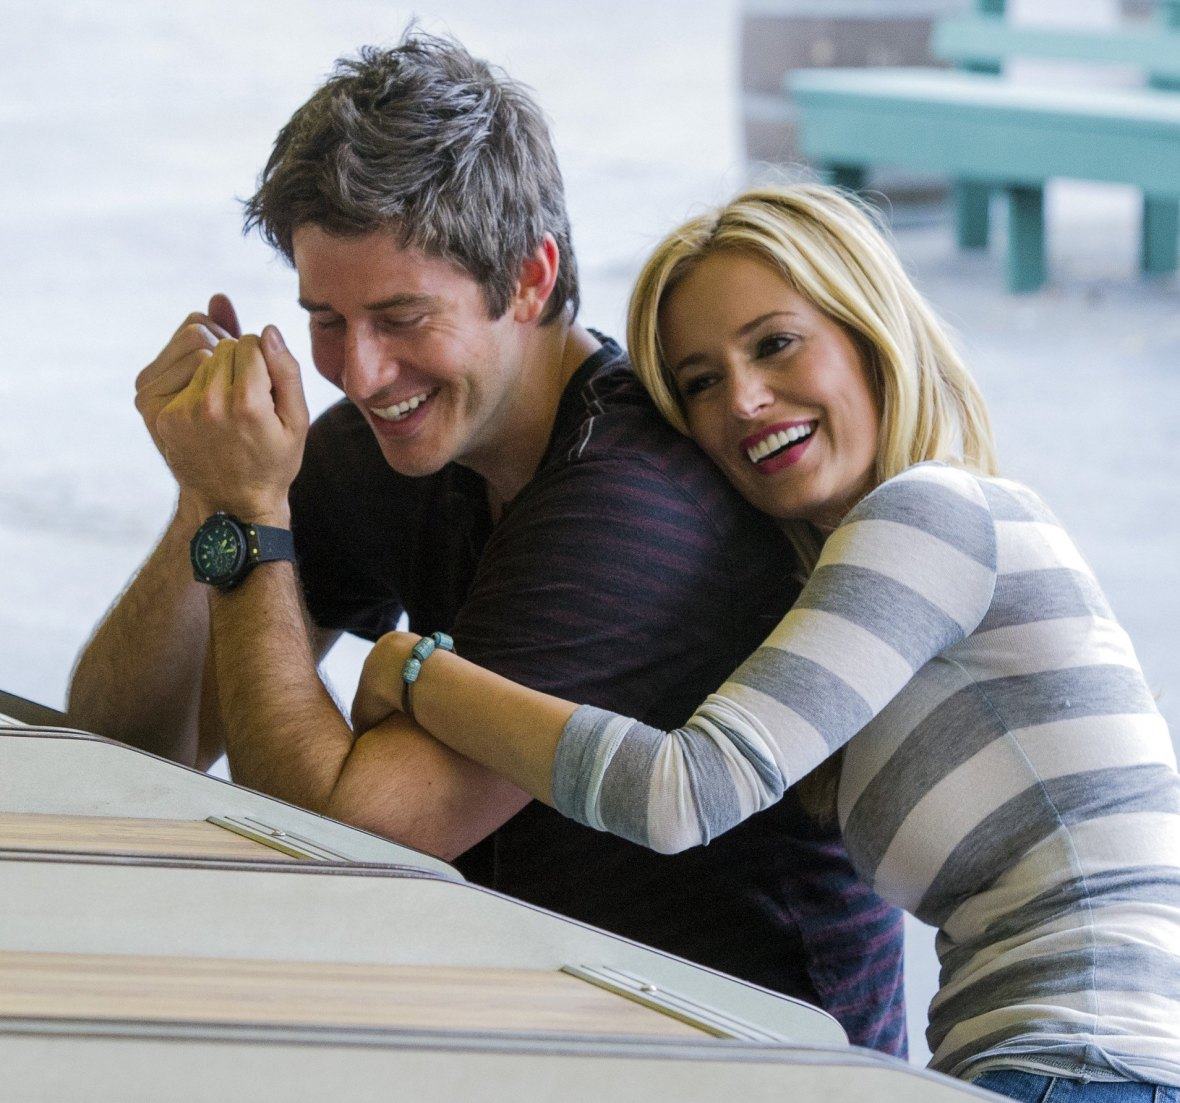 emily maynard arie luyendyk jr. getty images